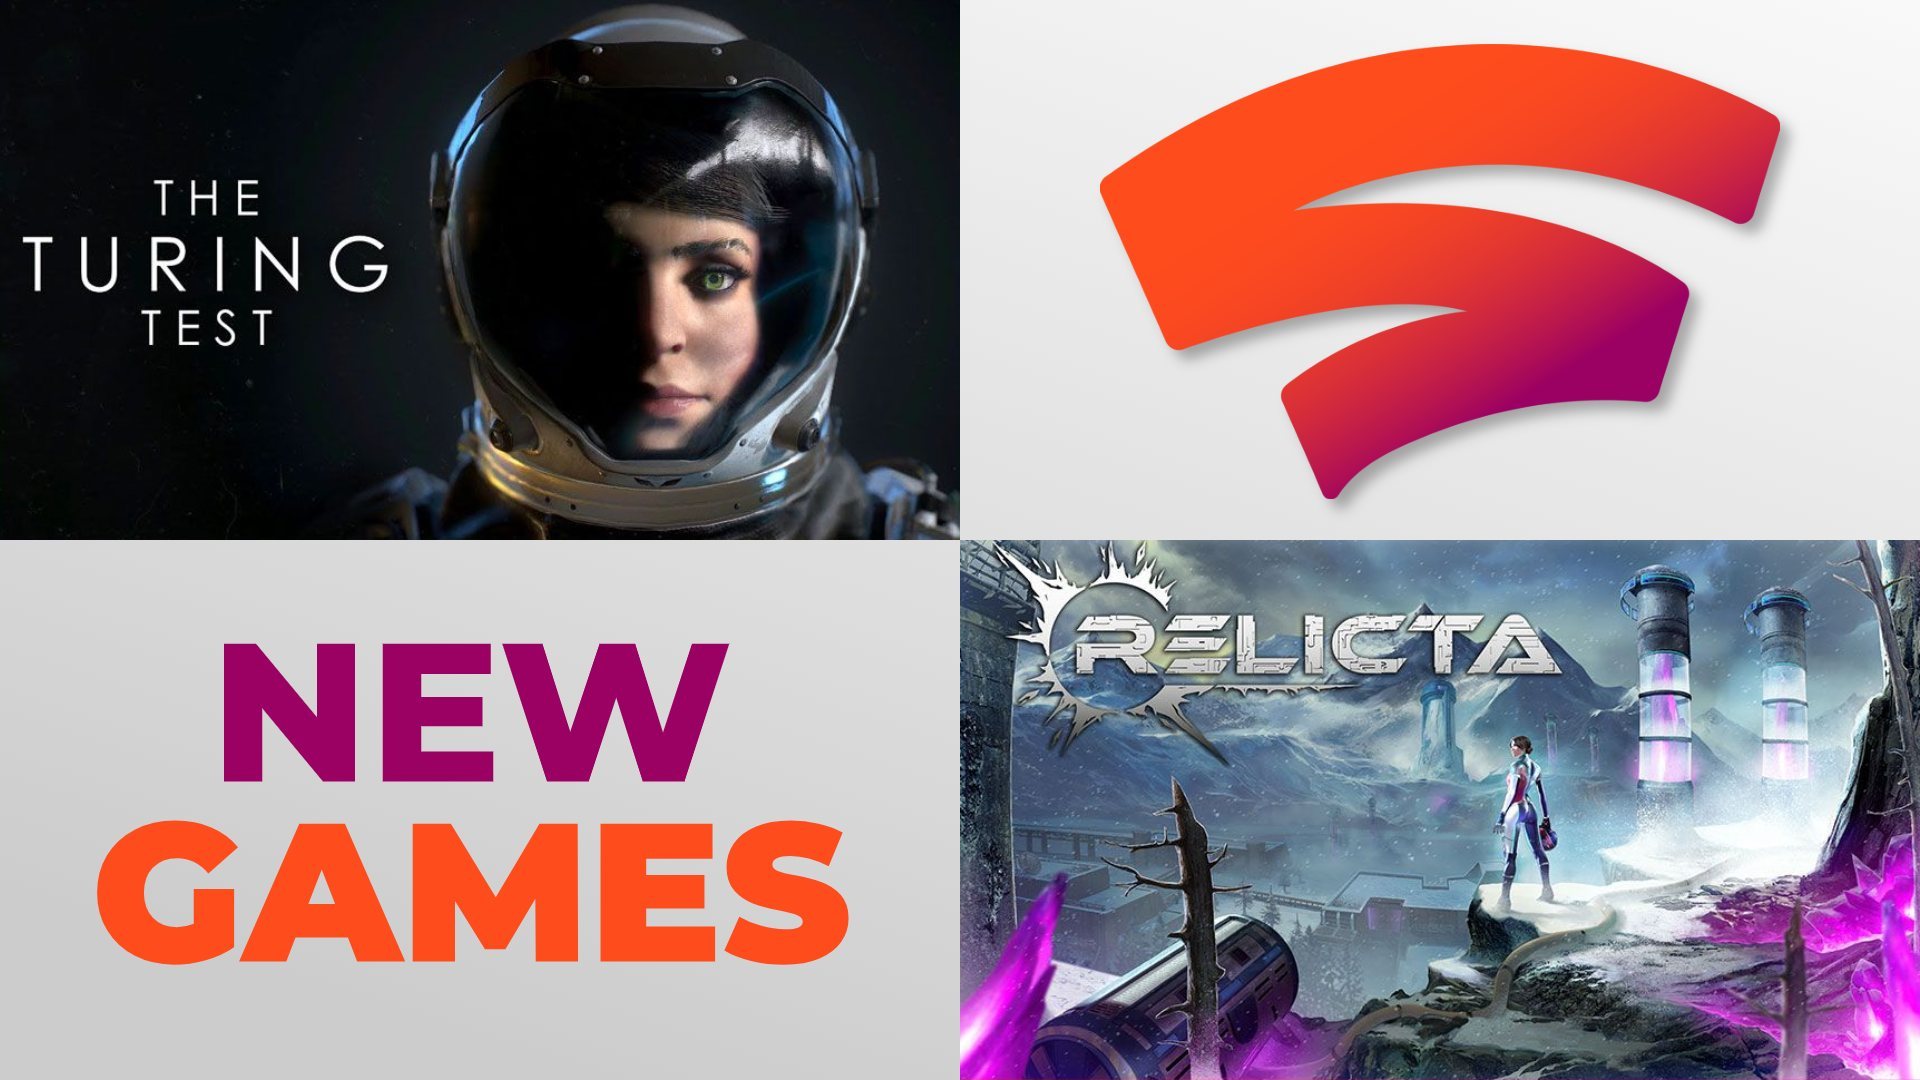 Two new, 3D FPS puzzler games announced for Stadia